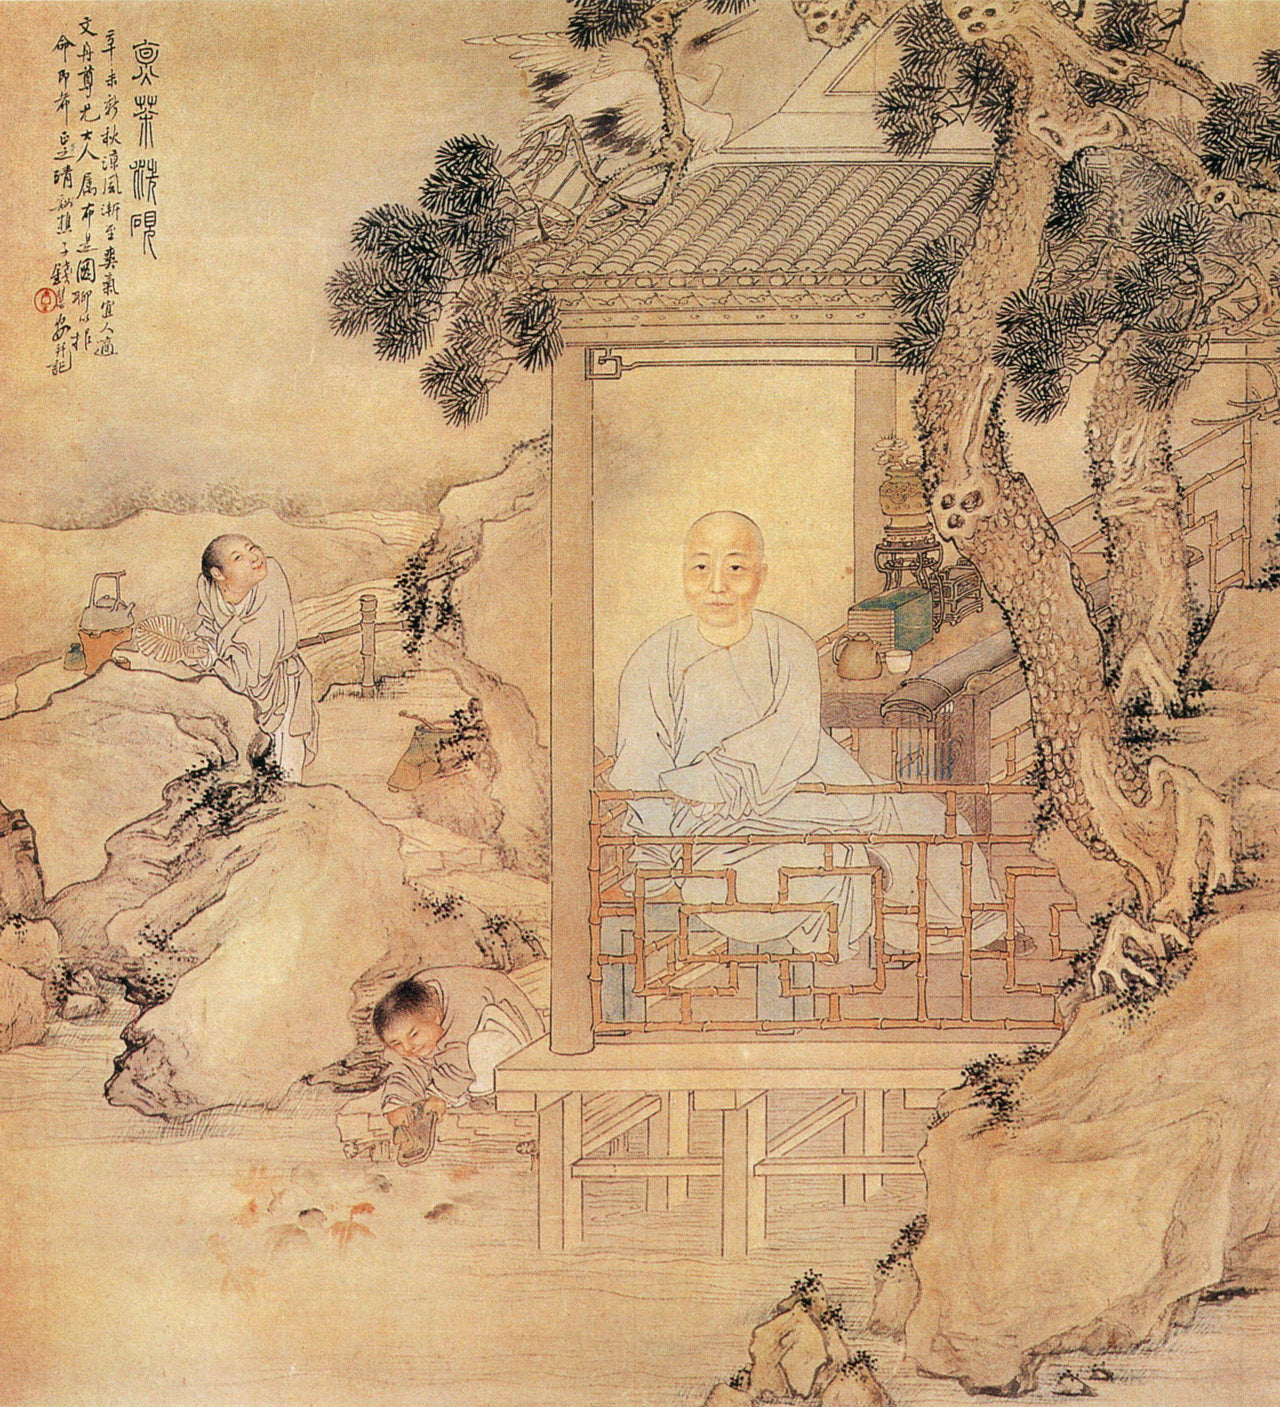 Qing Dynasty, Cooking tea and wash inkstone Figure, author Qian Huian